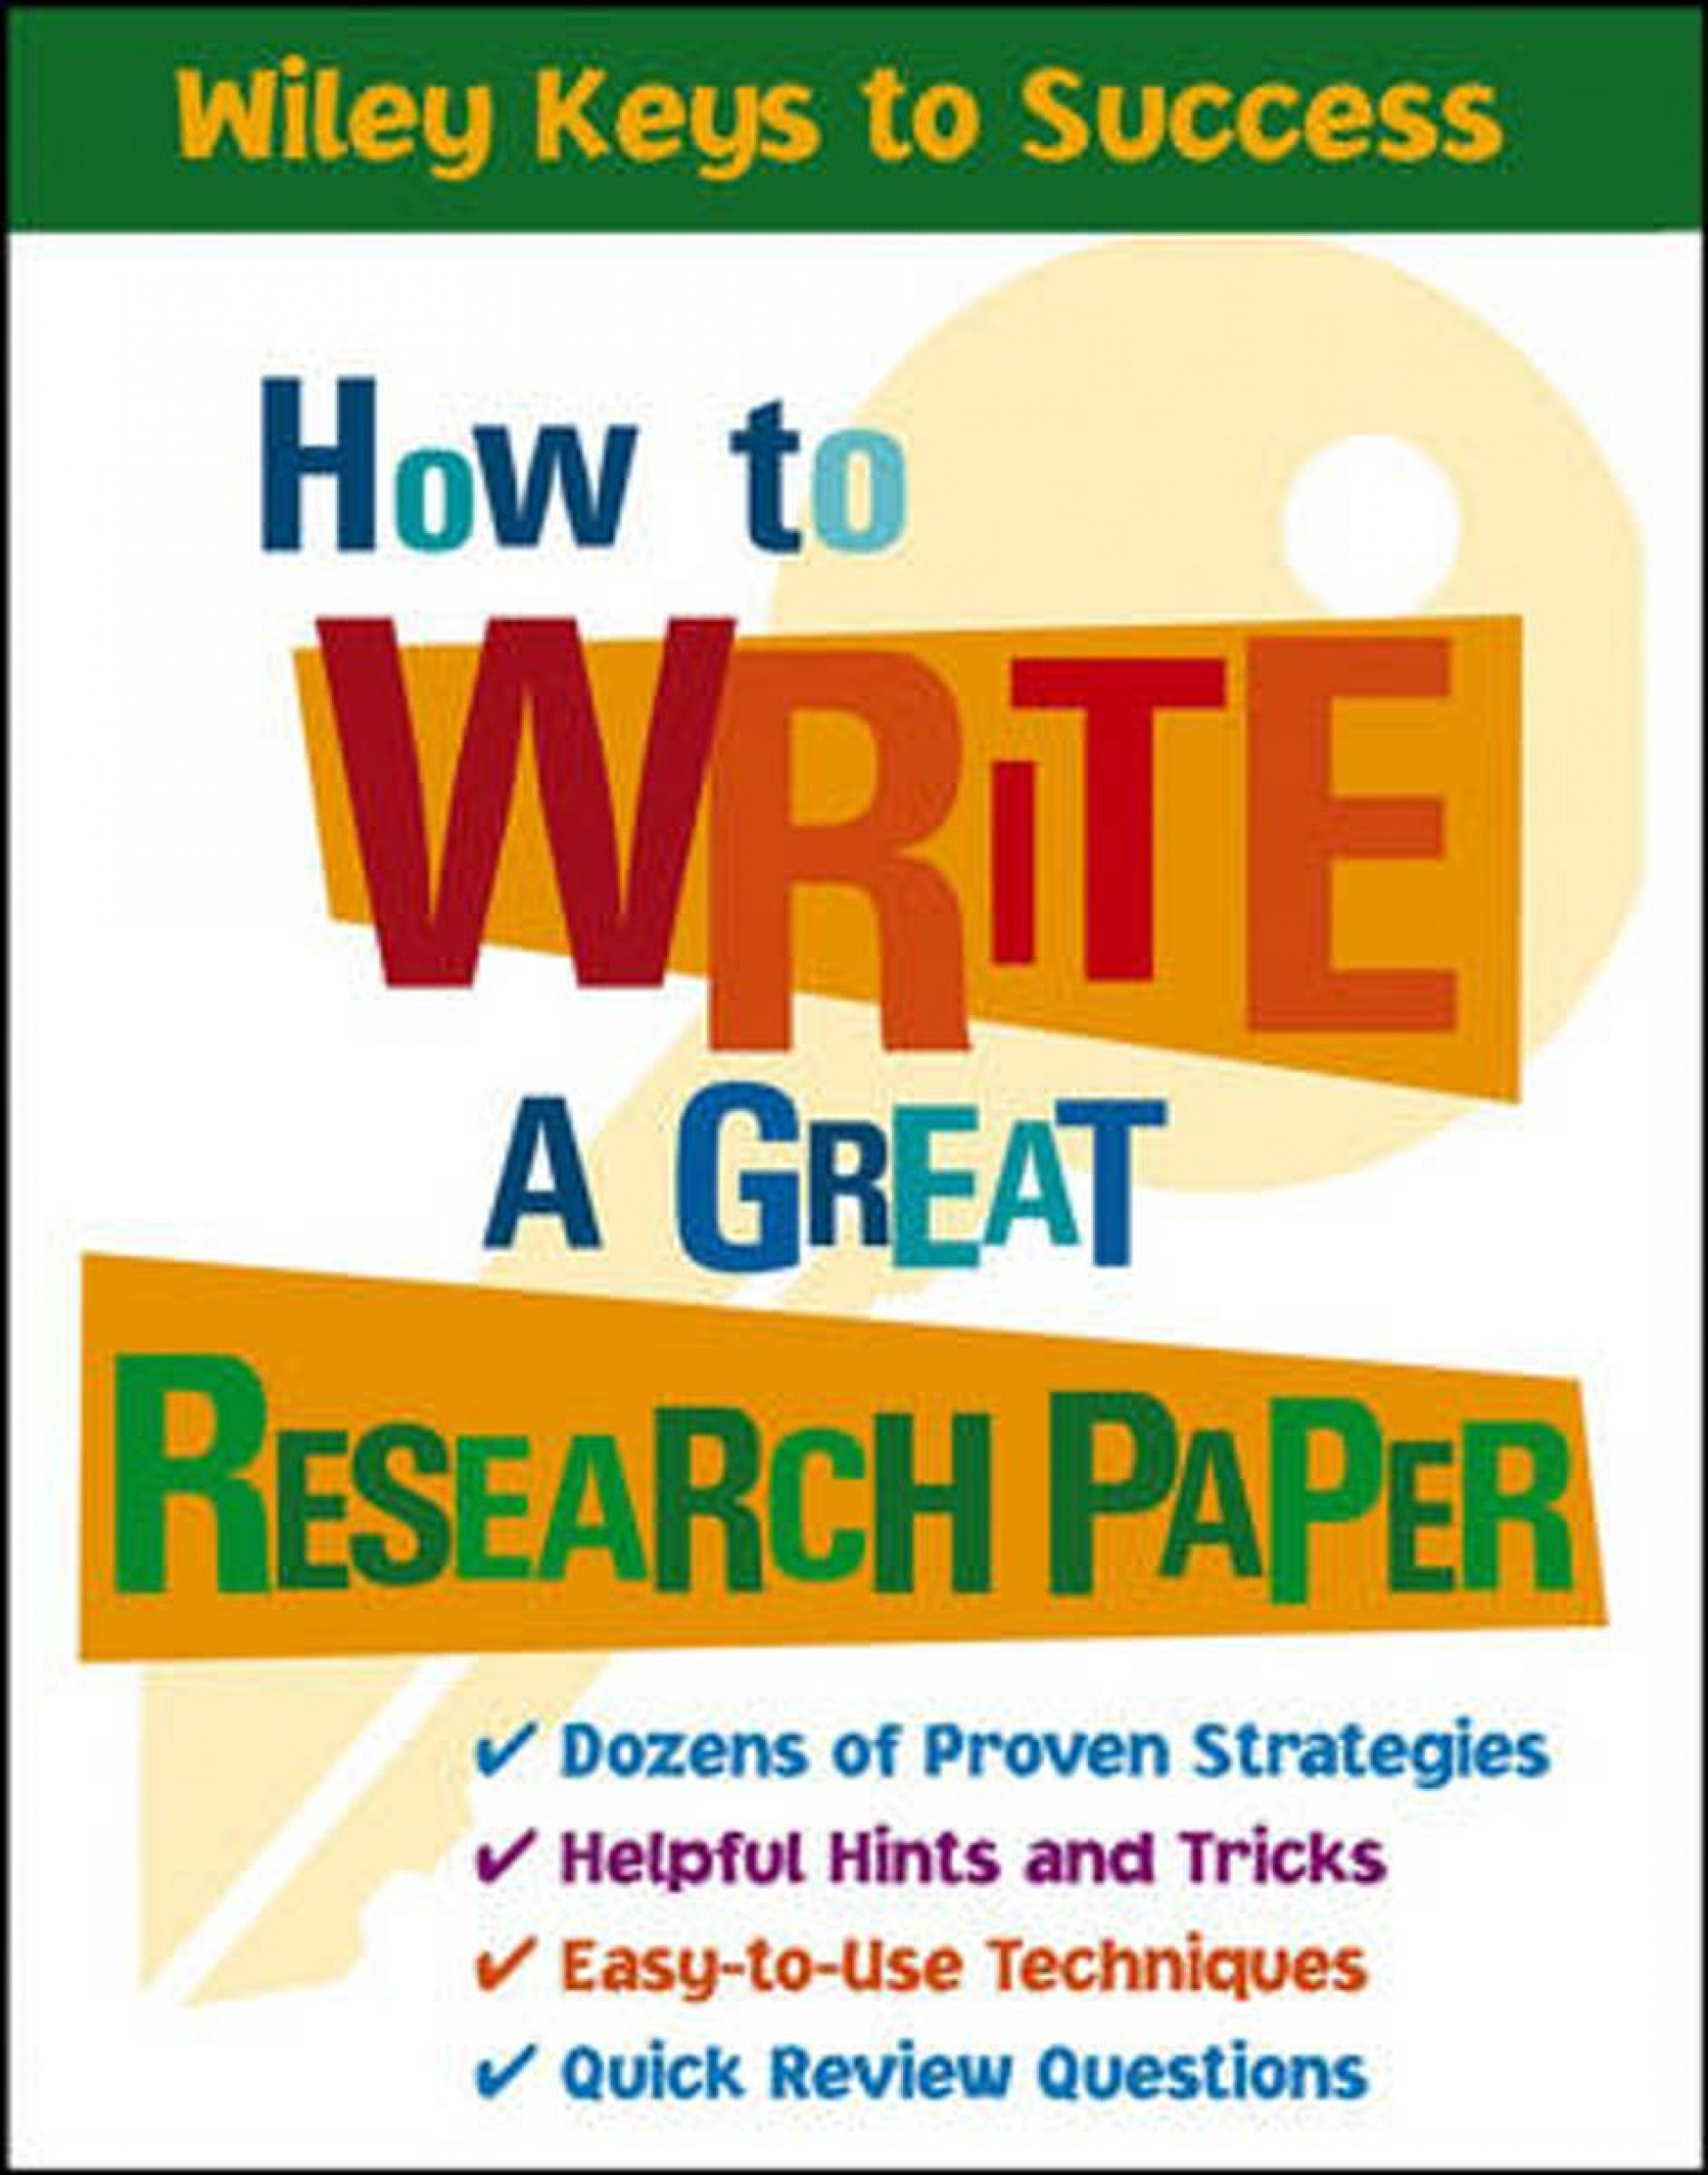 002 How To Write Great Research Paper Wiley Keys Success Archaicawful A (wiley Success) 1920